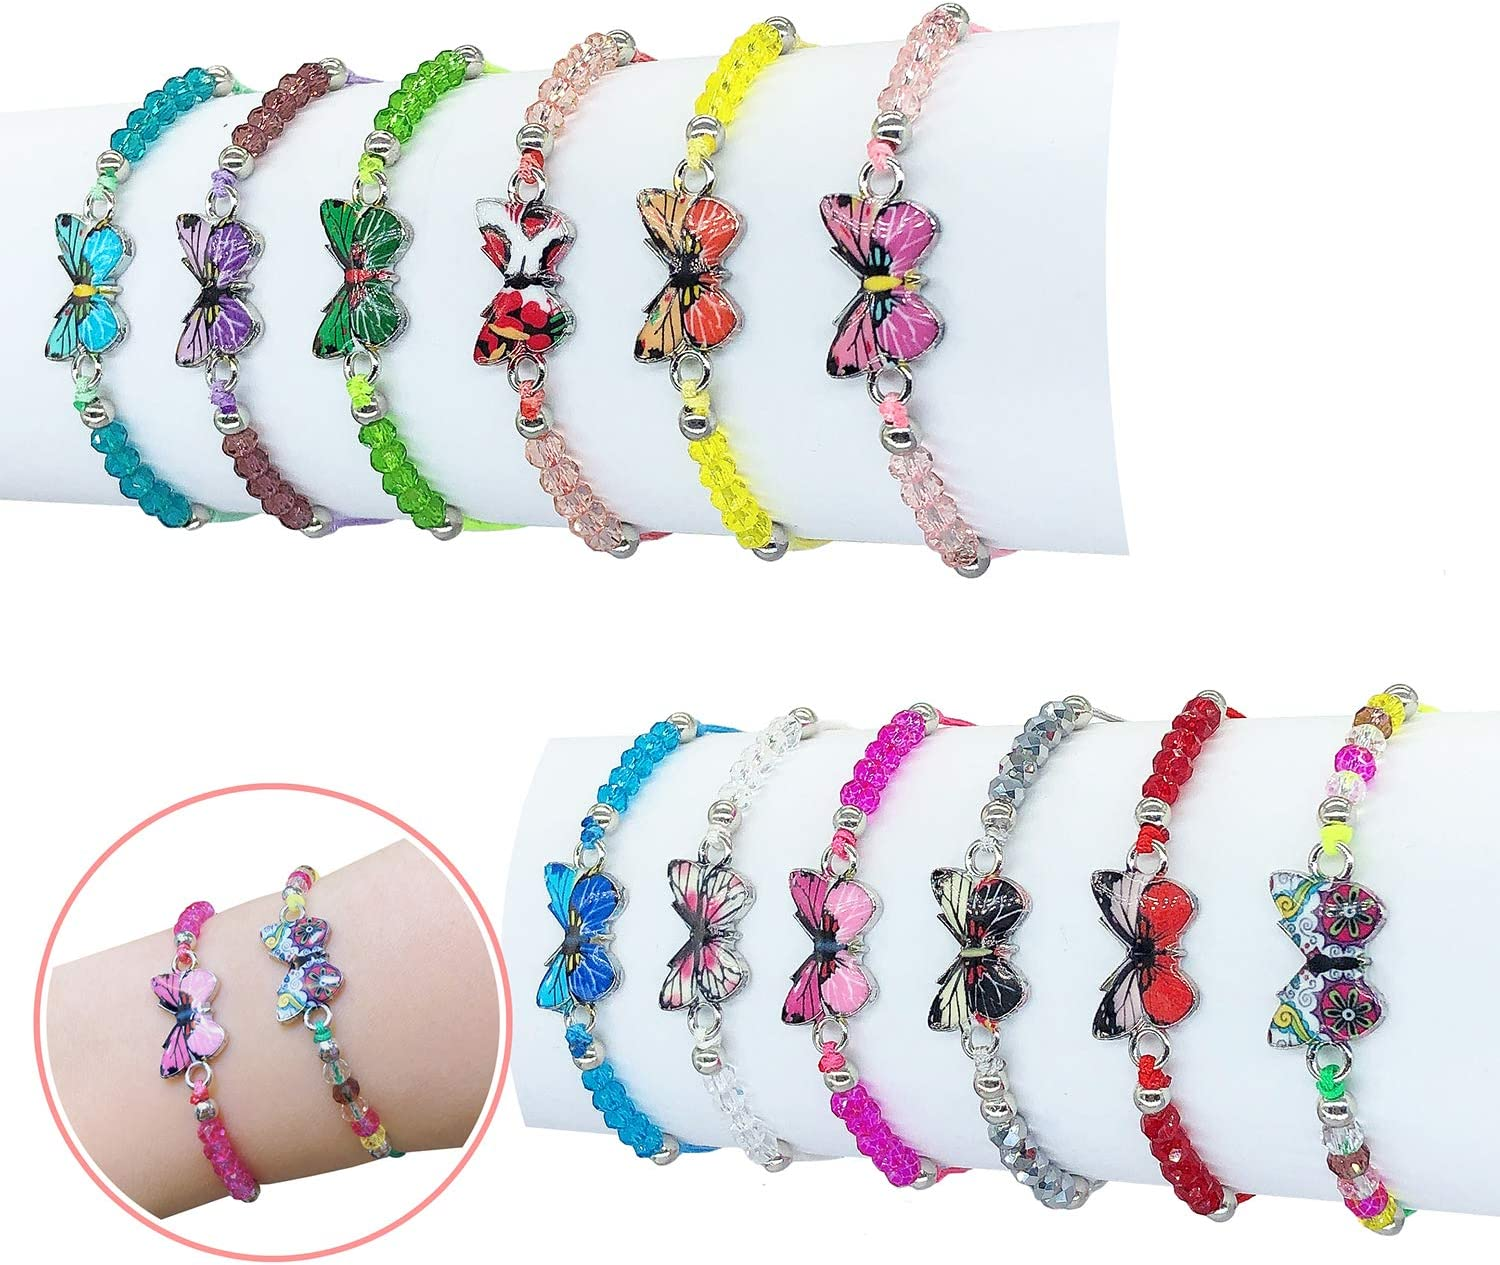 Elesa Miracle 12pc Women Girl Butterfly Woven Friendship Crystal Bead Bracelet Value Set Kids Party Favor Adjustable Bracelet